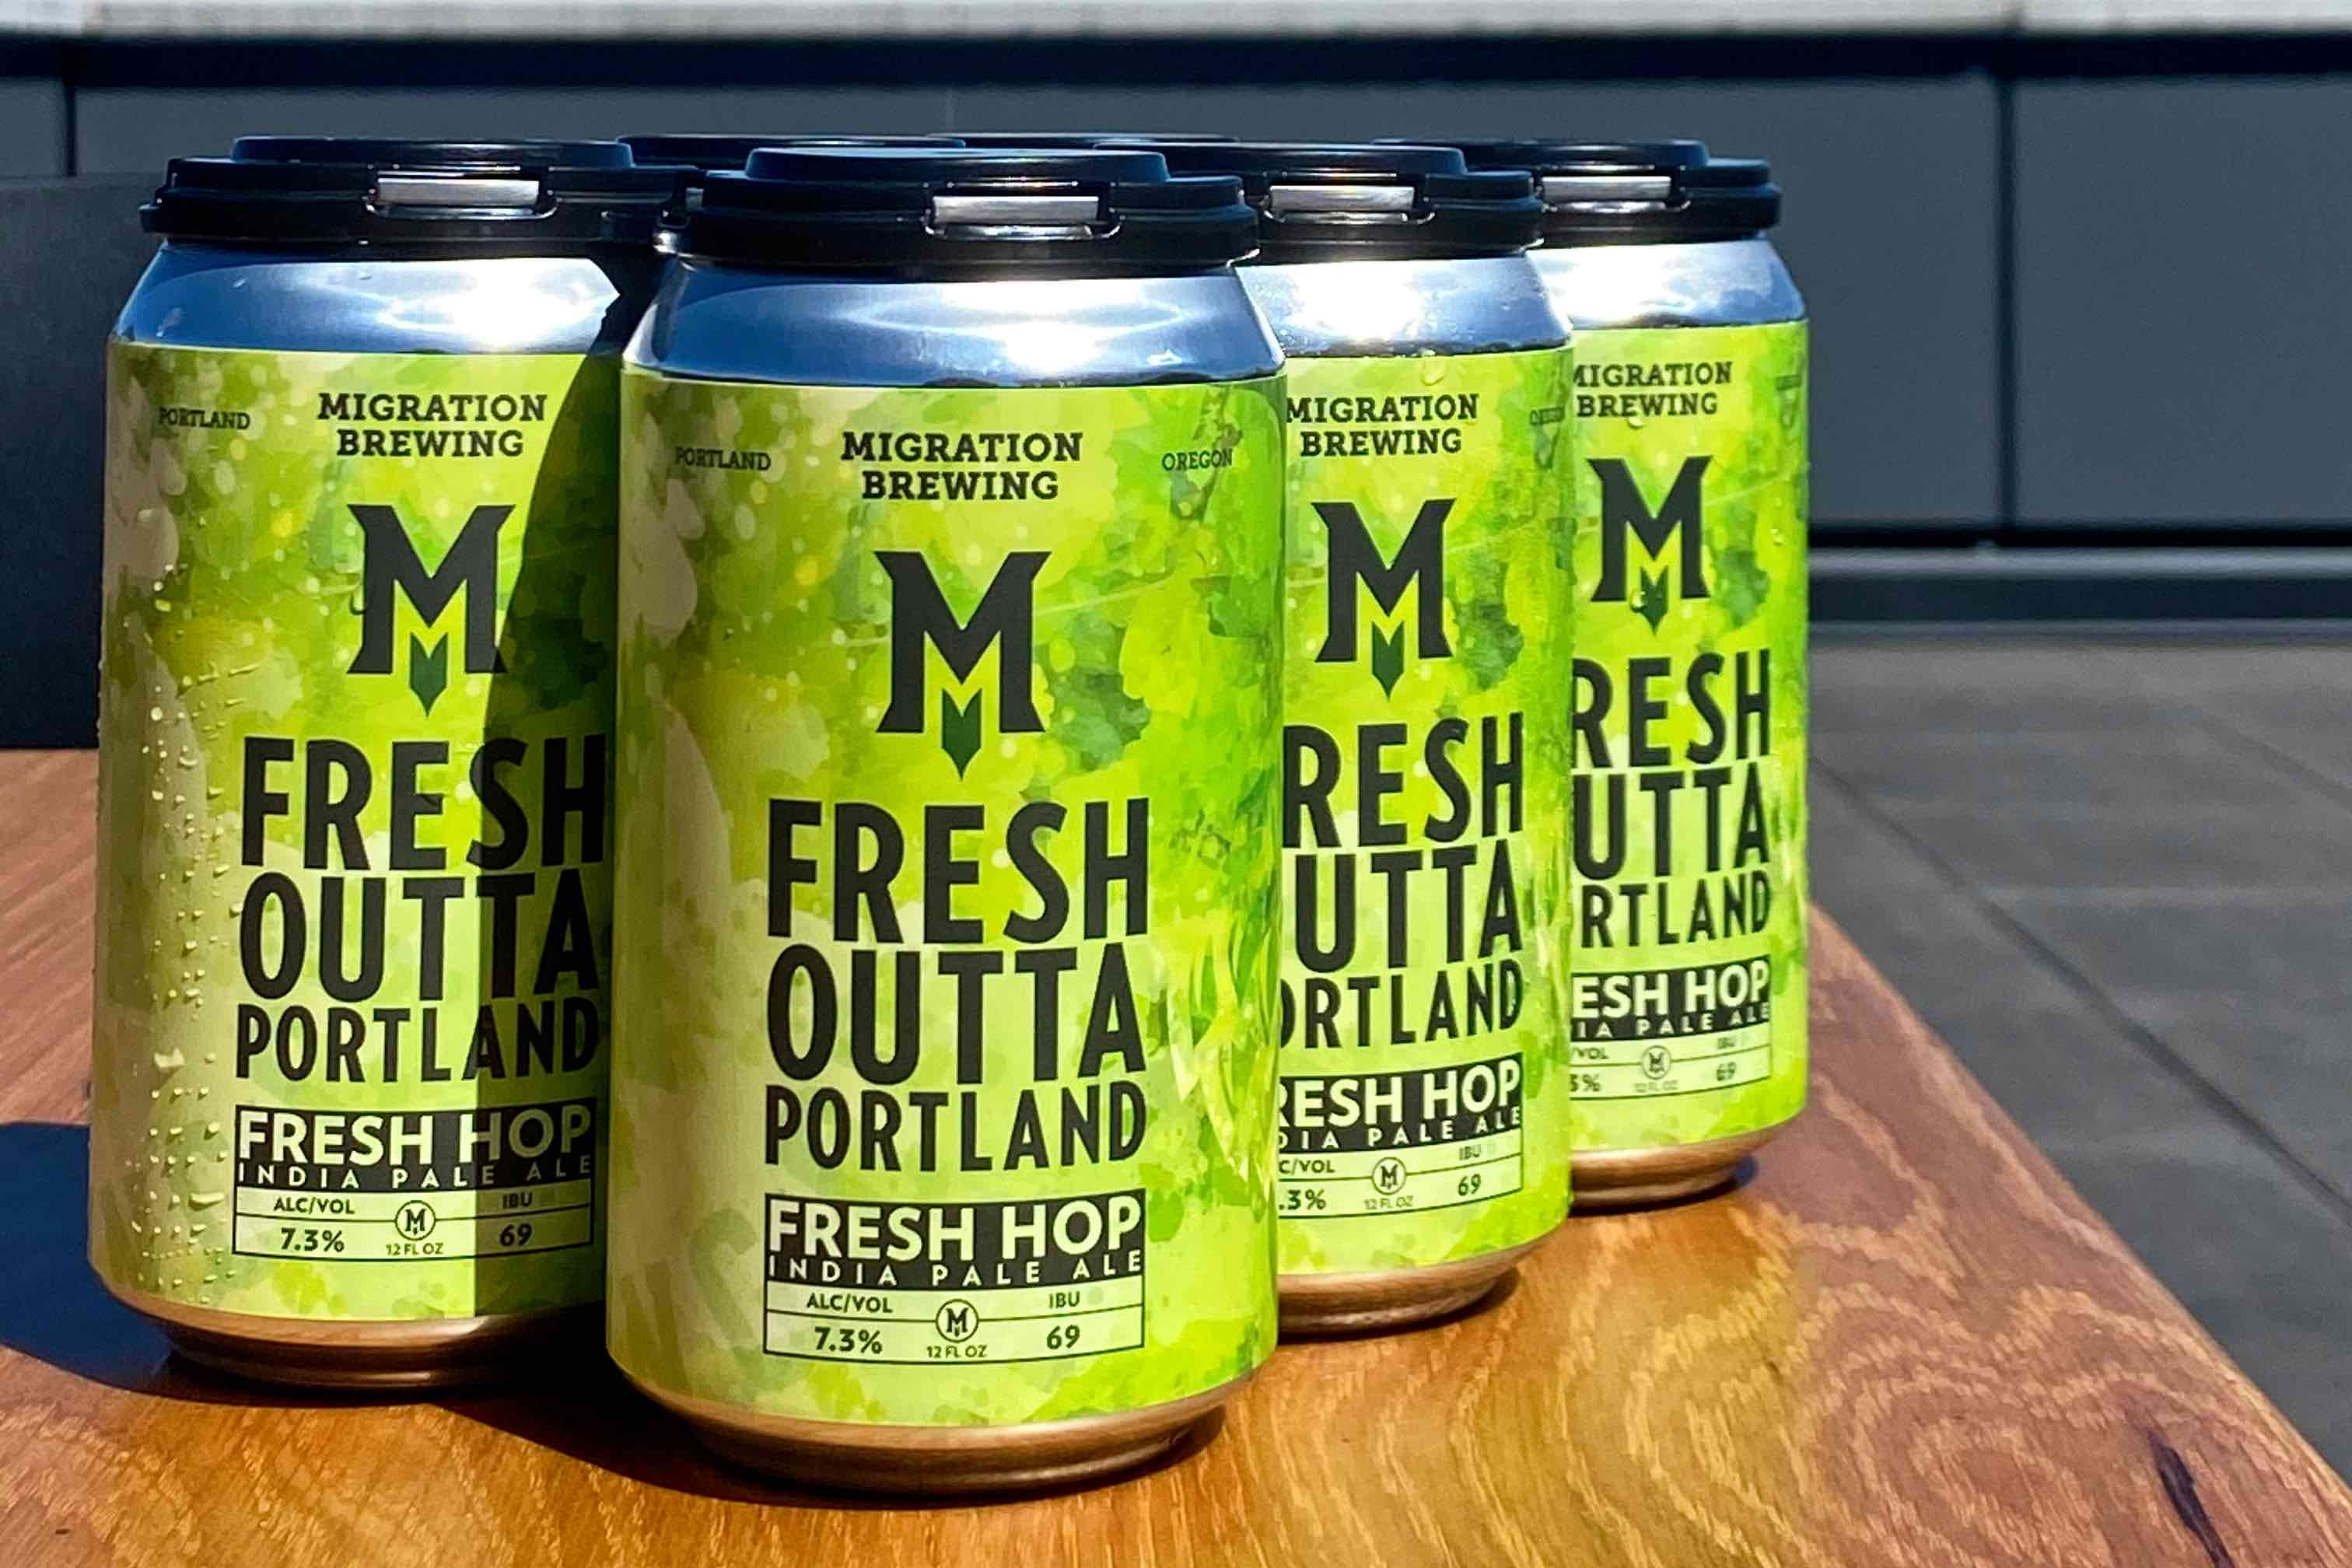 image of Fresh Outta Portland courtesy of Migration Brewing